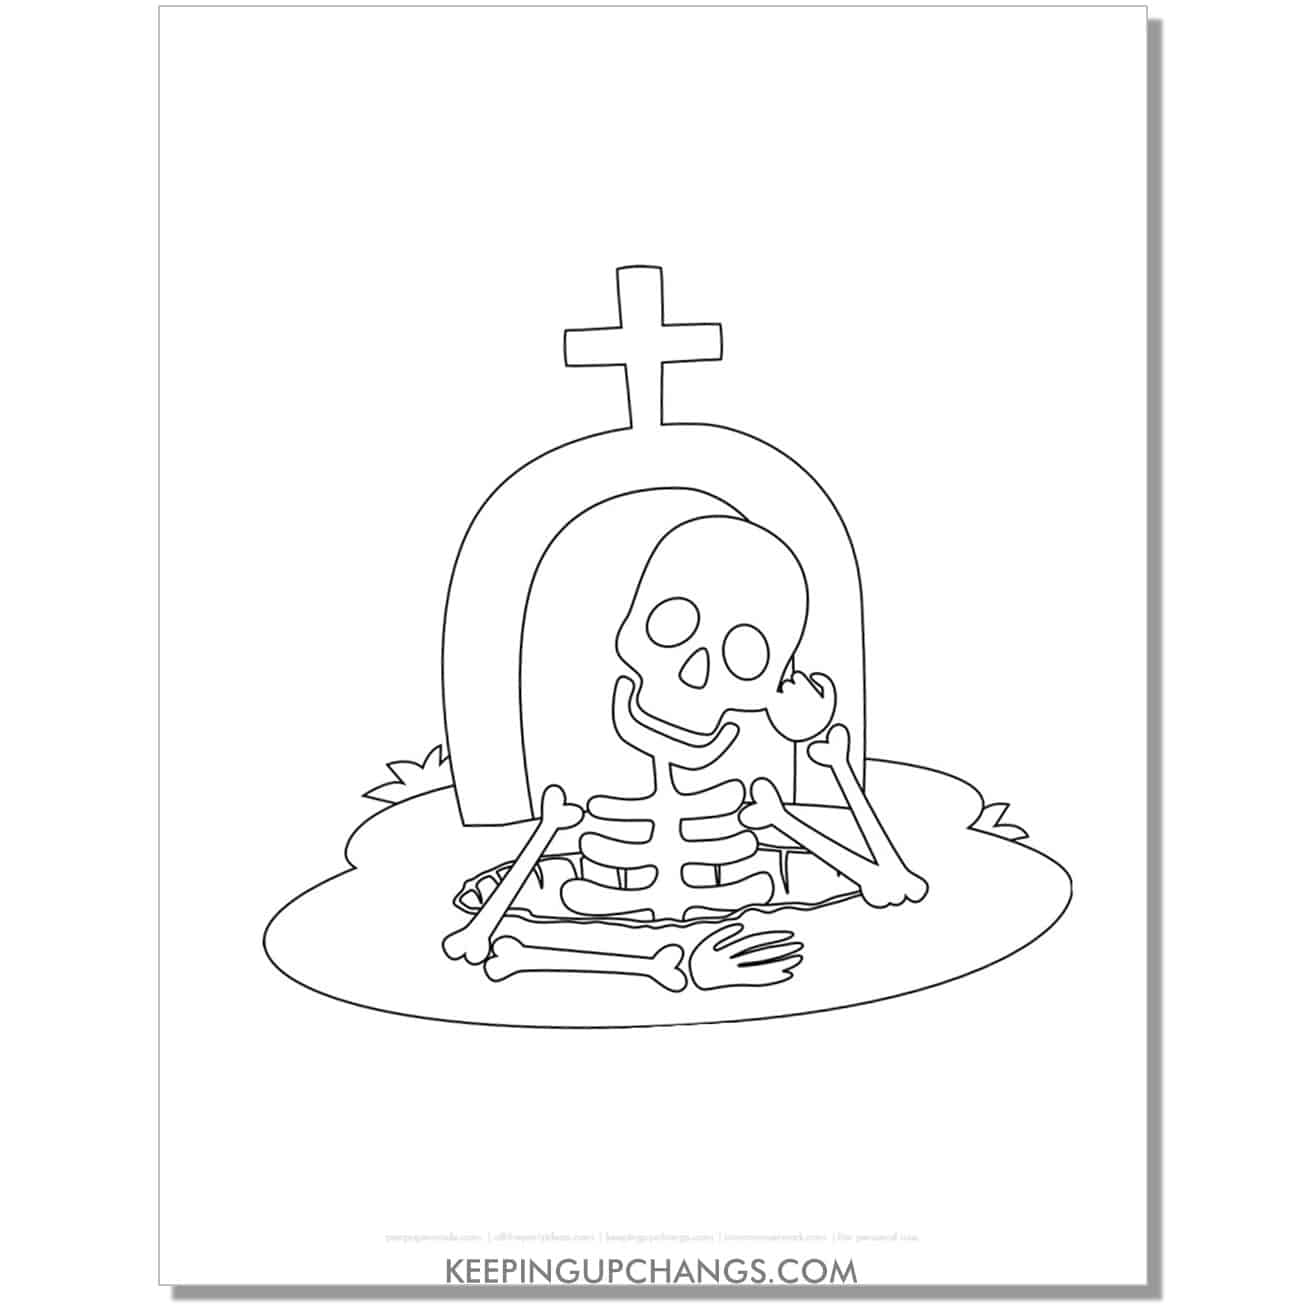 free friendly skeleton coming up from grave coloring page.